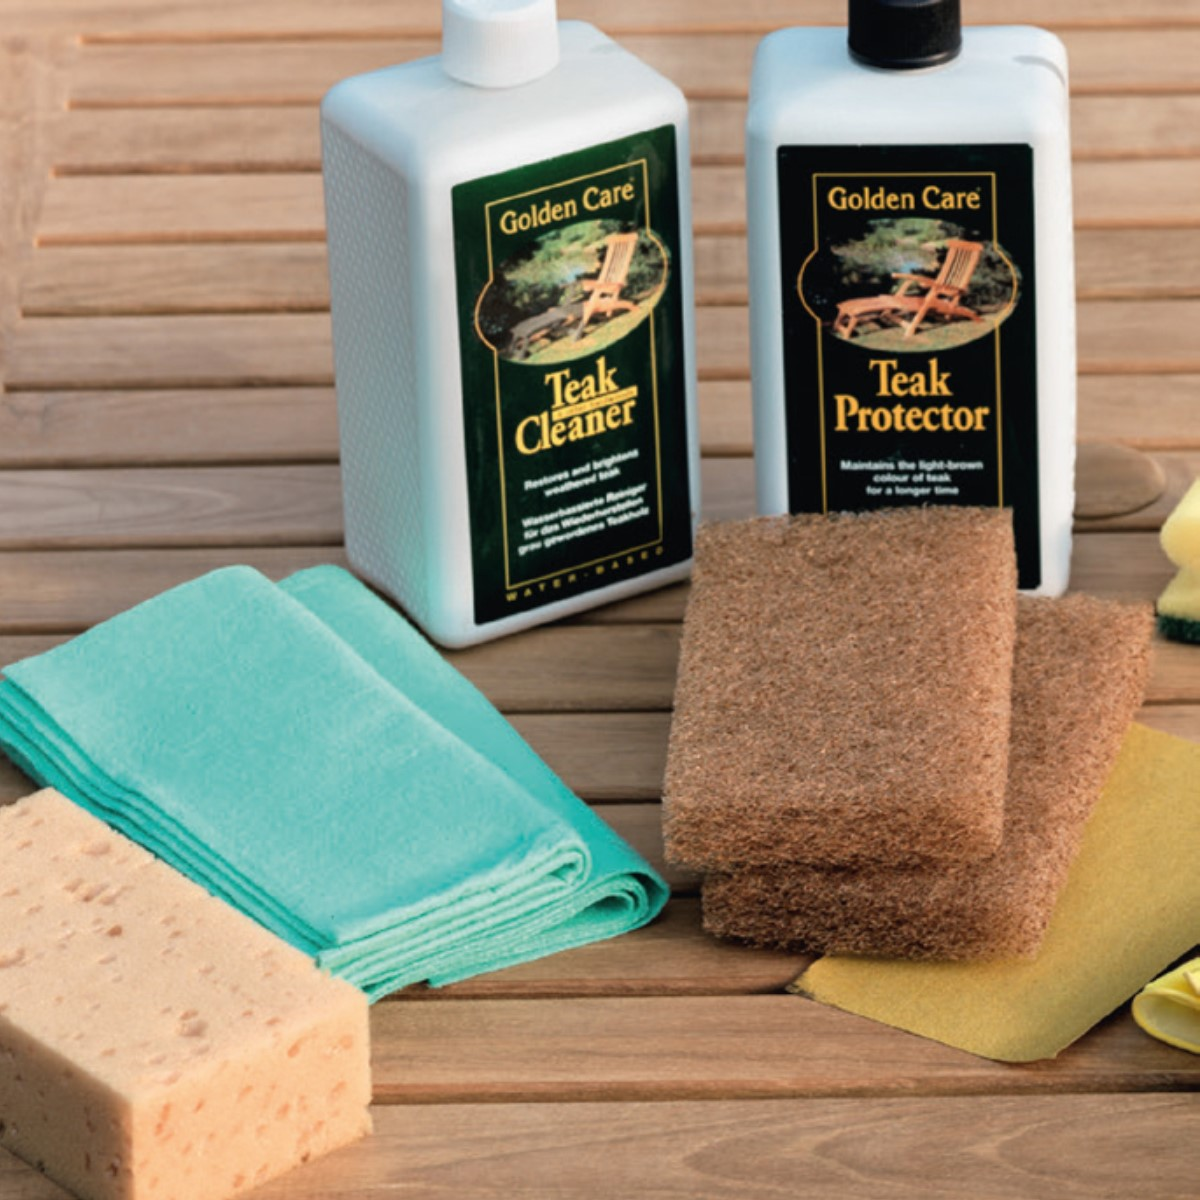 A teak outdoor furniture care kit with treatment fluid bottle and cloths and sponges laid out on a wooden table